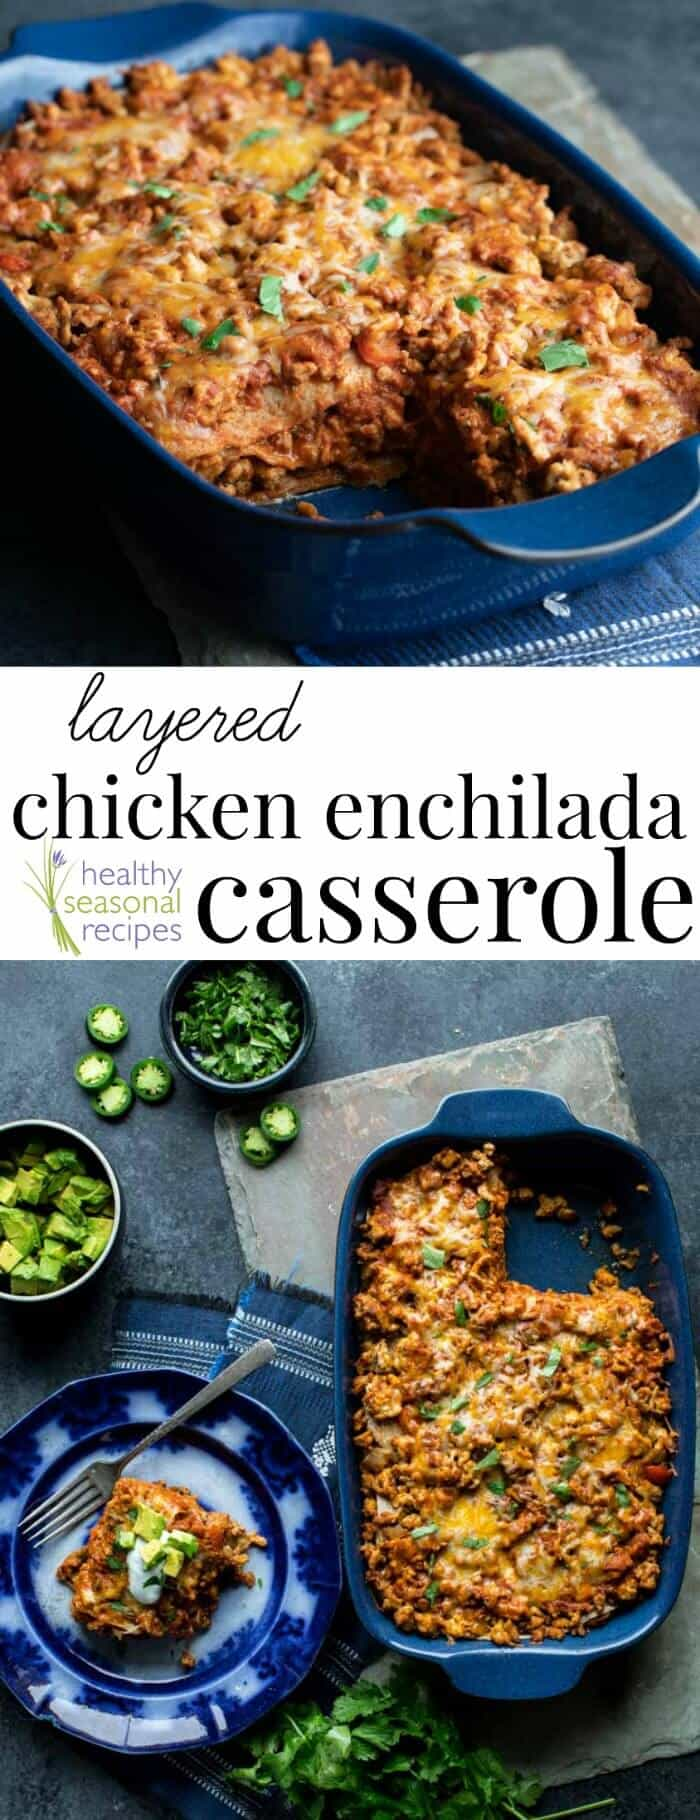 This Layered Chicken Enchilada Casserole is ready in just 35 minutes, a snap to make, super yummy and kid friendly. Gluten Free version, too! #casserole #DASHdiet #chickenrecipe #healthyMexicanfood #weeknightdinner #kidfriendlyfood